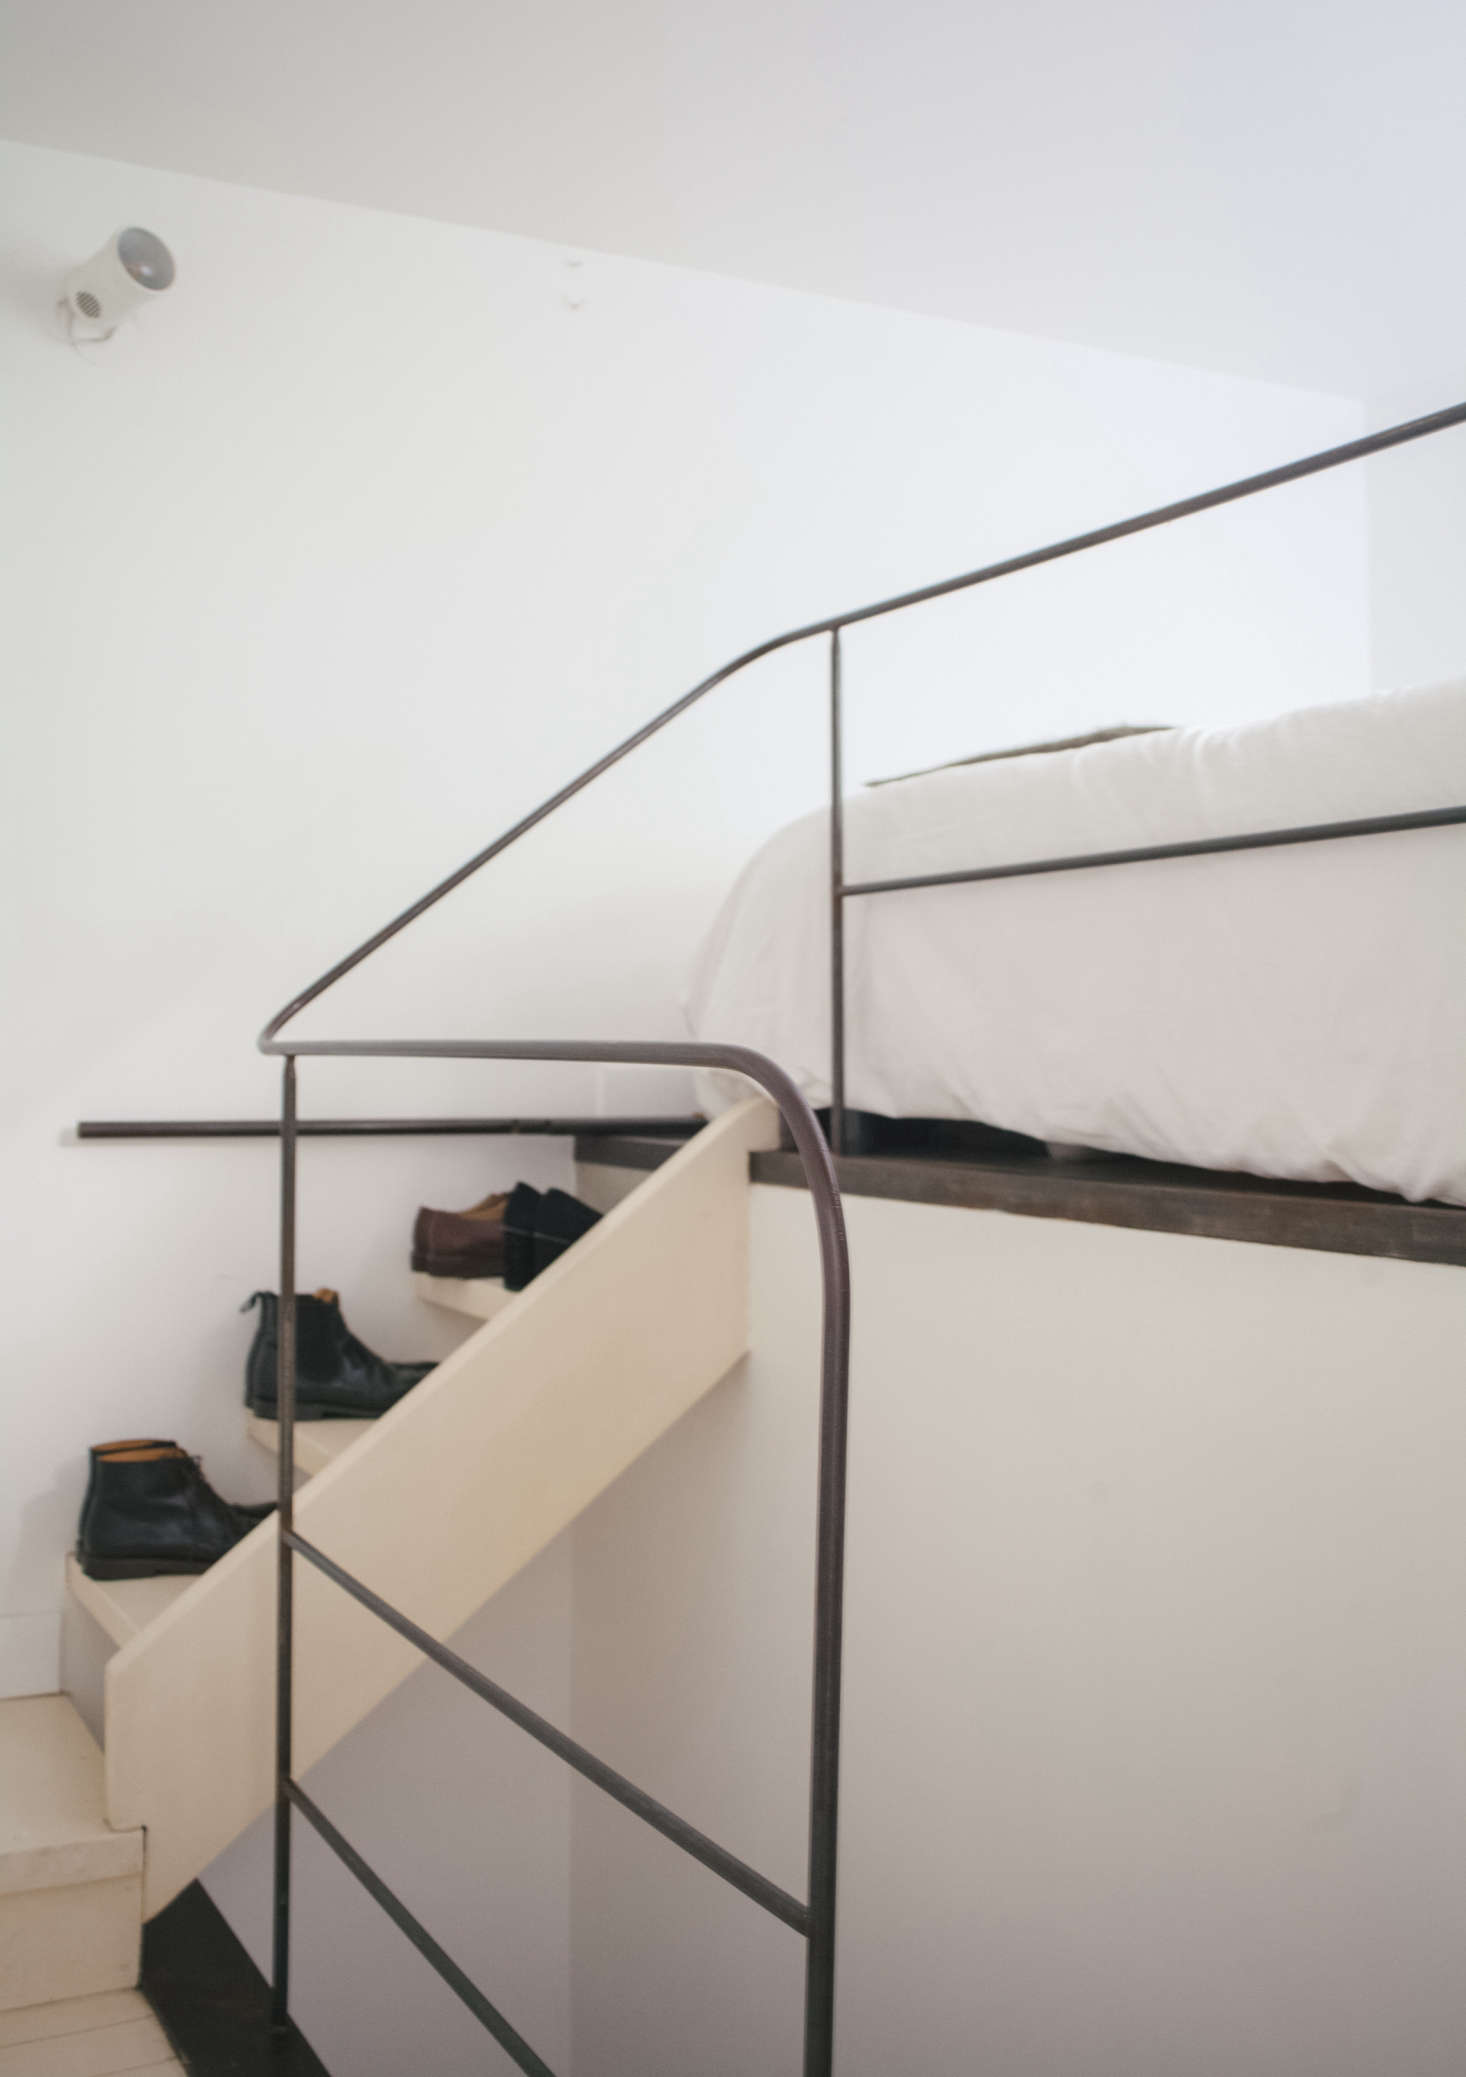 A steel handrail is one of the many timeless architectural details added by Fassio-Viaud. Lucile and Michel use one edge of the stairs to store their shoes.